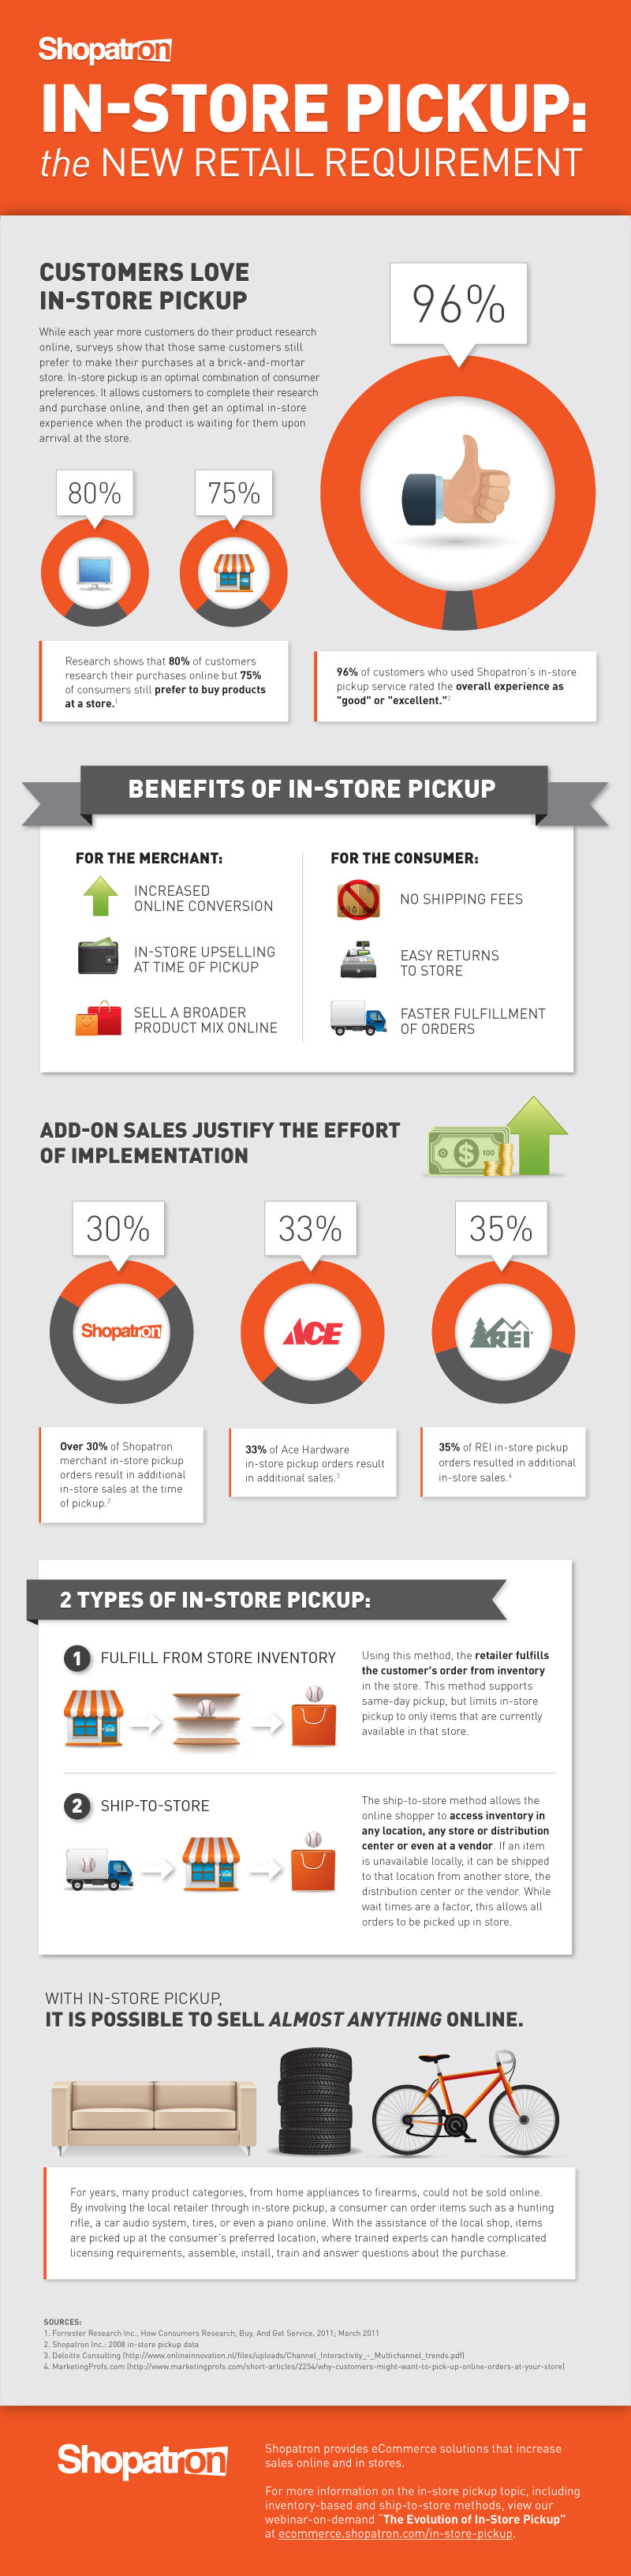 In-Store-Pickup-infographic